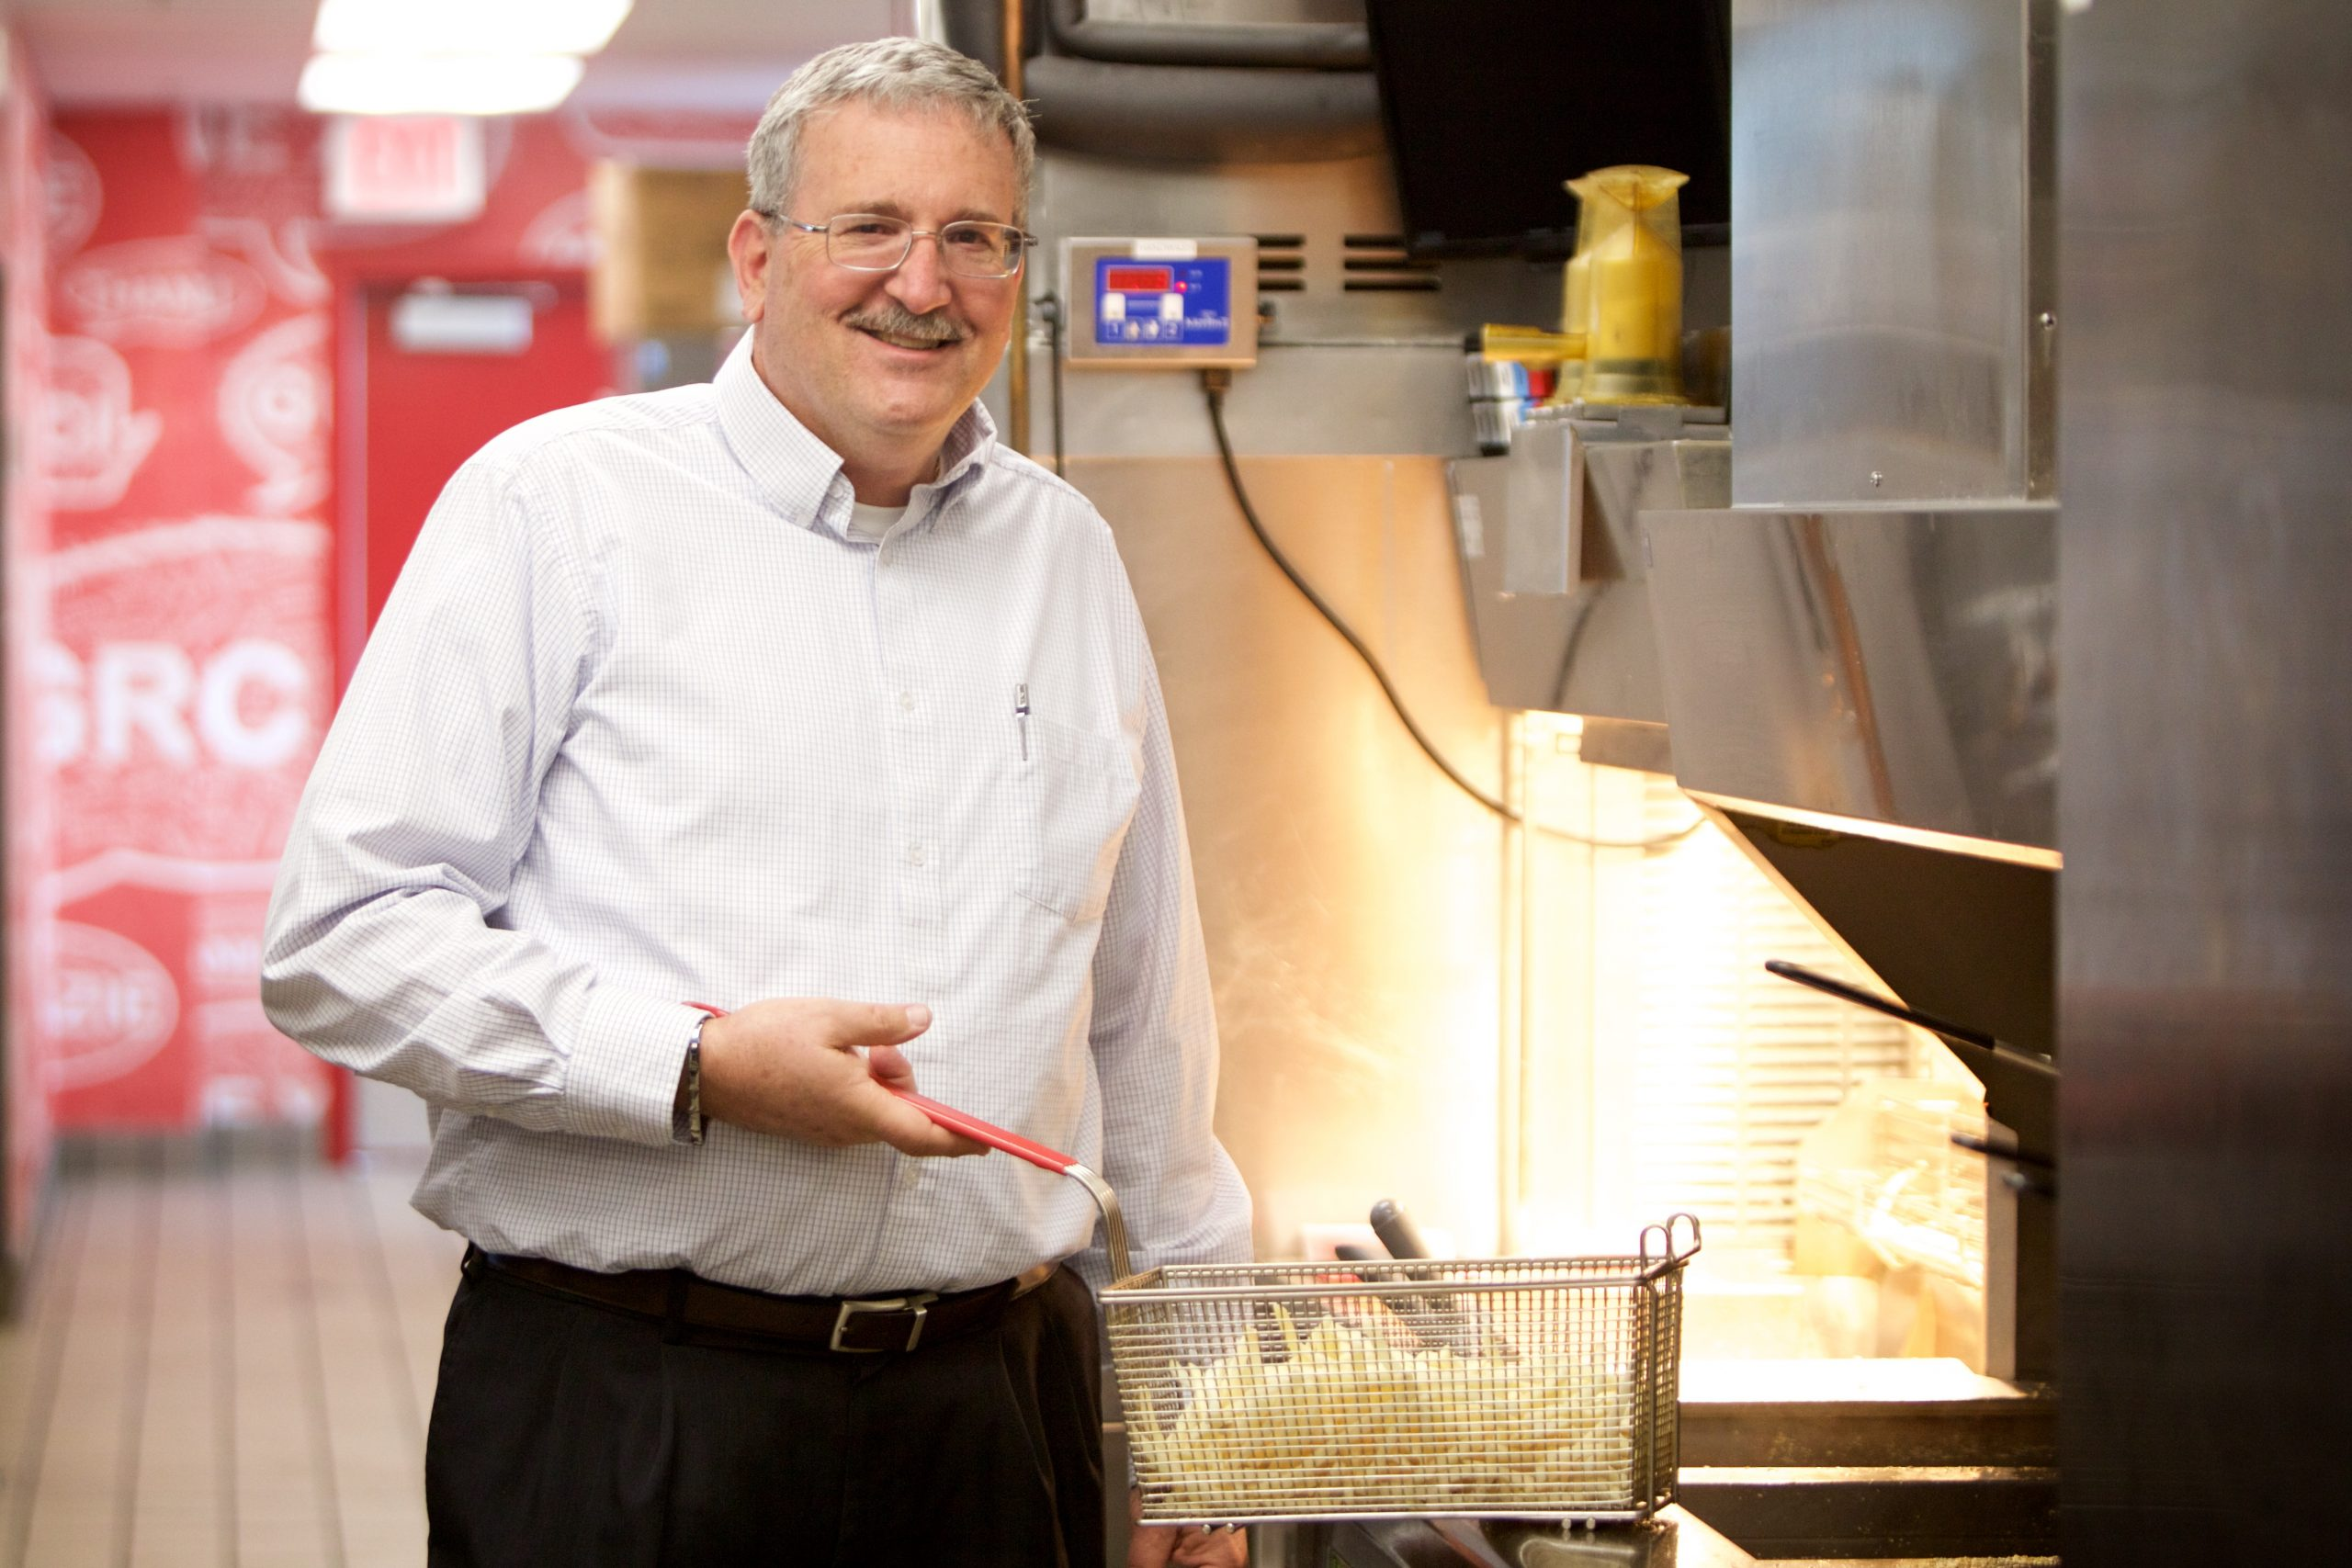 Local McDonald's Franchise Owner Has Humble Beginnings at the Grill